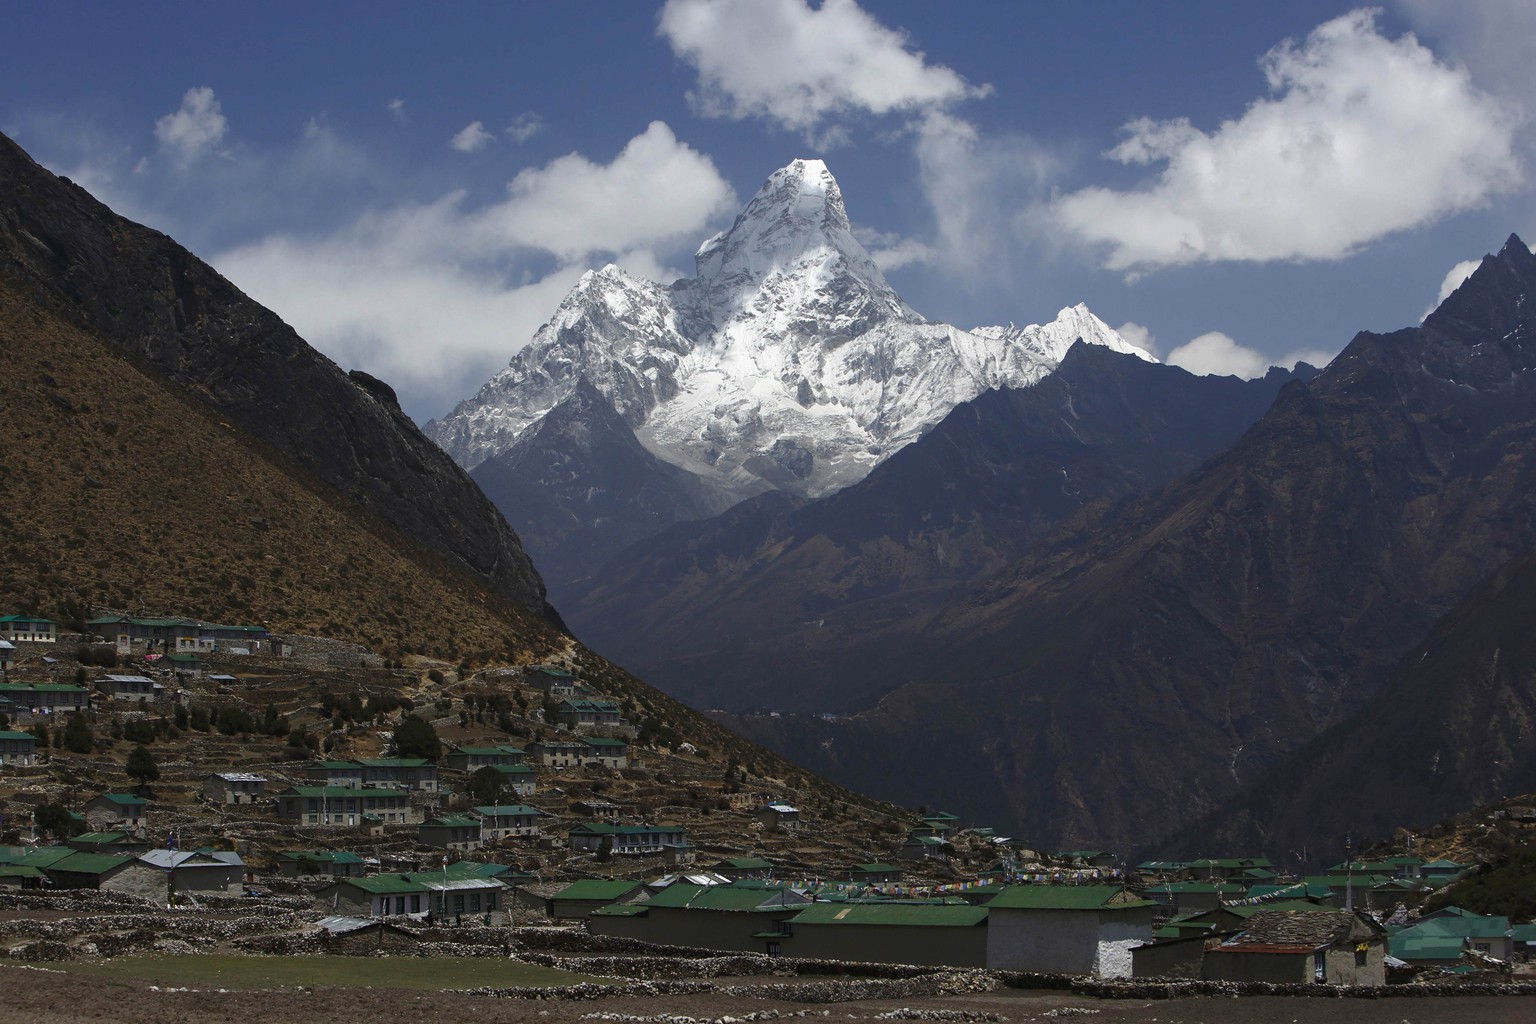 Mount Ama Dablam, which stands approximately 6800 meters above sea level, is seen behind Khumjung Village in Solukhumbu District April 30, 2014. More than 4,000 climbers have reached the summit of Everest, the world's highest peak, since it was first scaled by Sir Edmund Hillary and Tenzing Norgay Sherpa in 1953. In April, an avalanche killed 16 Nepali Sherpa guides who were fixing ropes and ferrying supplies for their foreign clients to climb the 8,850-metre (29,035-foot) peak. The accident - the deadliest in the history of Mount Everest - triggered a dispute between sherpa guides who wanted a climbing ban in honour of their colleagues and the Nepali government that refused to close the mountain. The sherpas staged a boycott, forcing hundreds of foreign climbers to call off their bids to climb Everest.  Picture taken April 30, 2014. REUTERS/Navesh Chitrakar (NEPAL - Tags: ENVIRONMENT SOCIETY BUSINESS EMPLOYMENT TRAVEL)